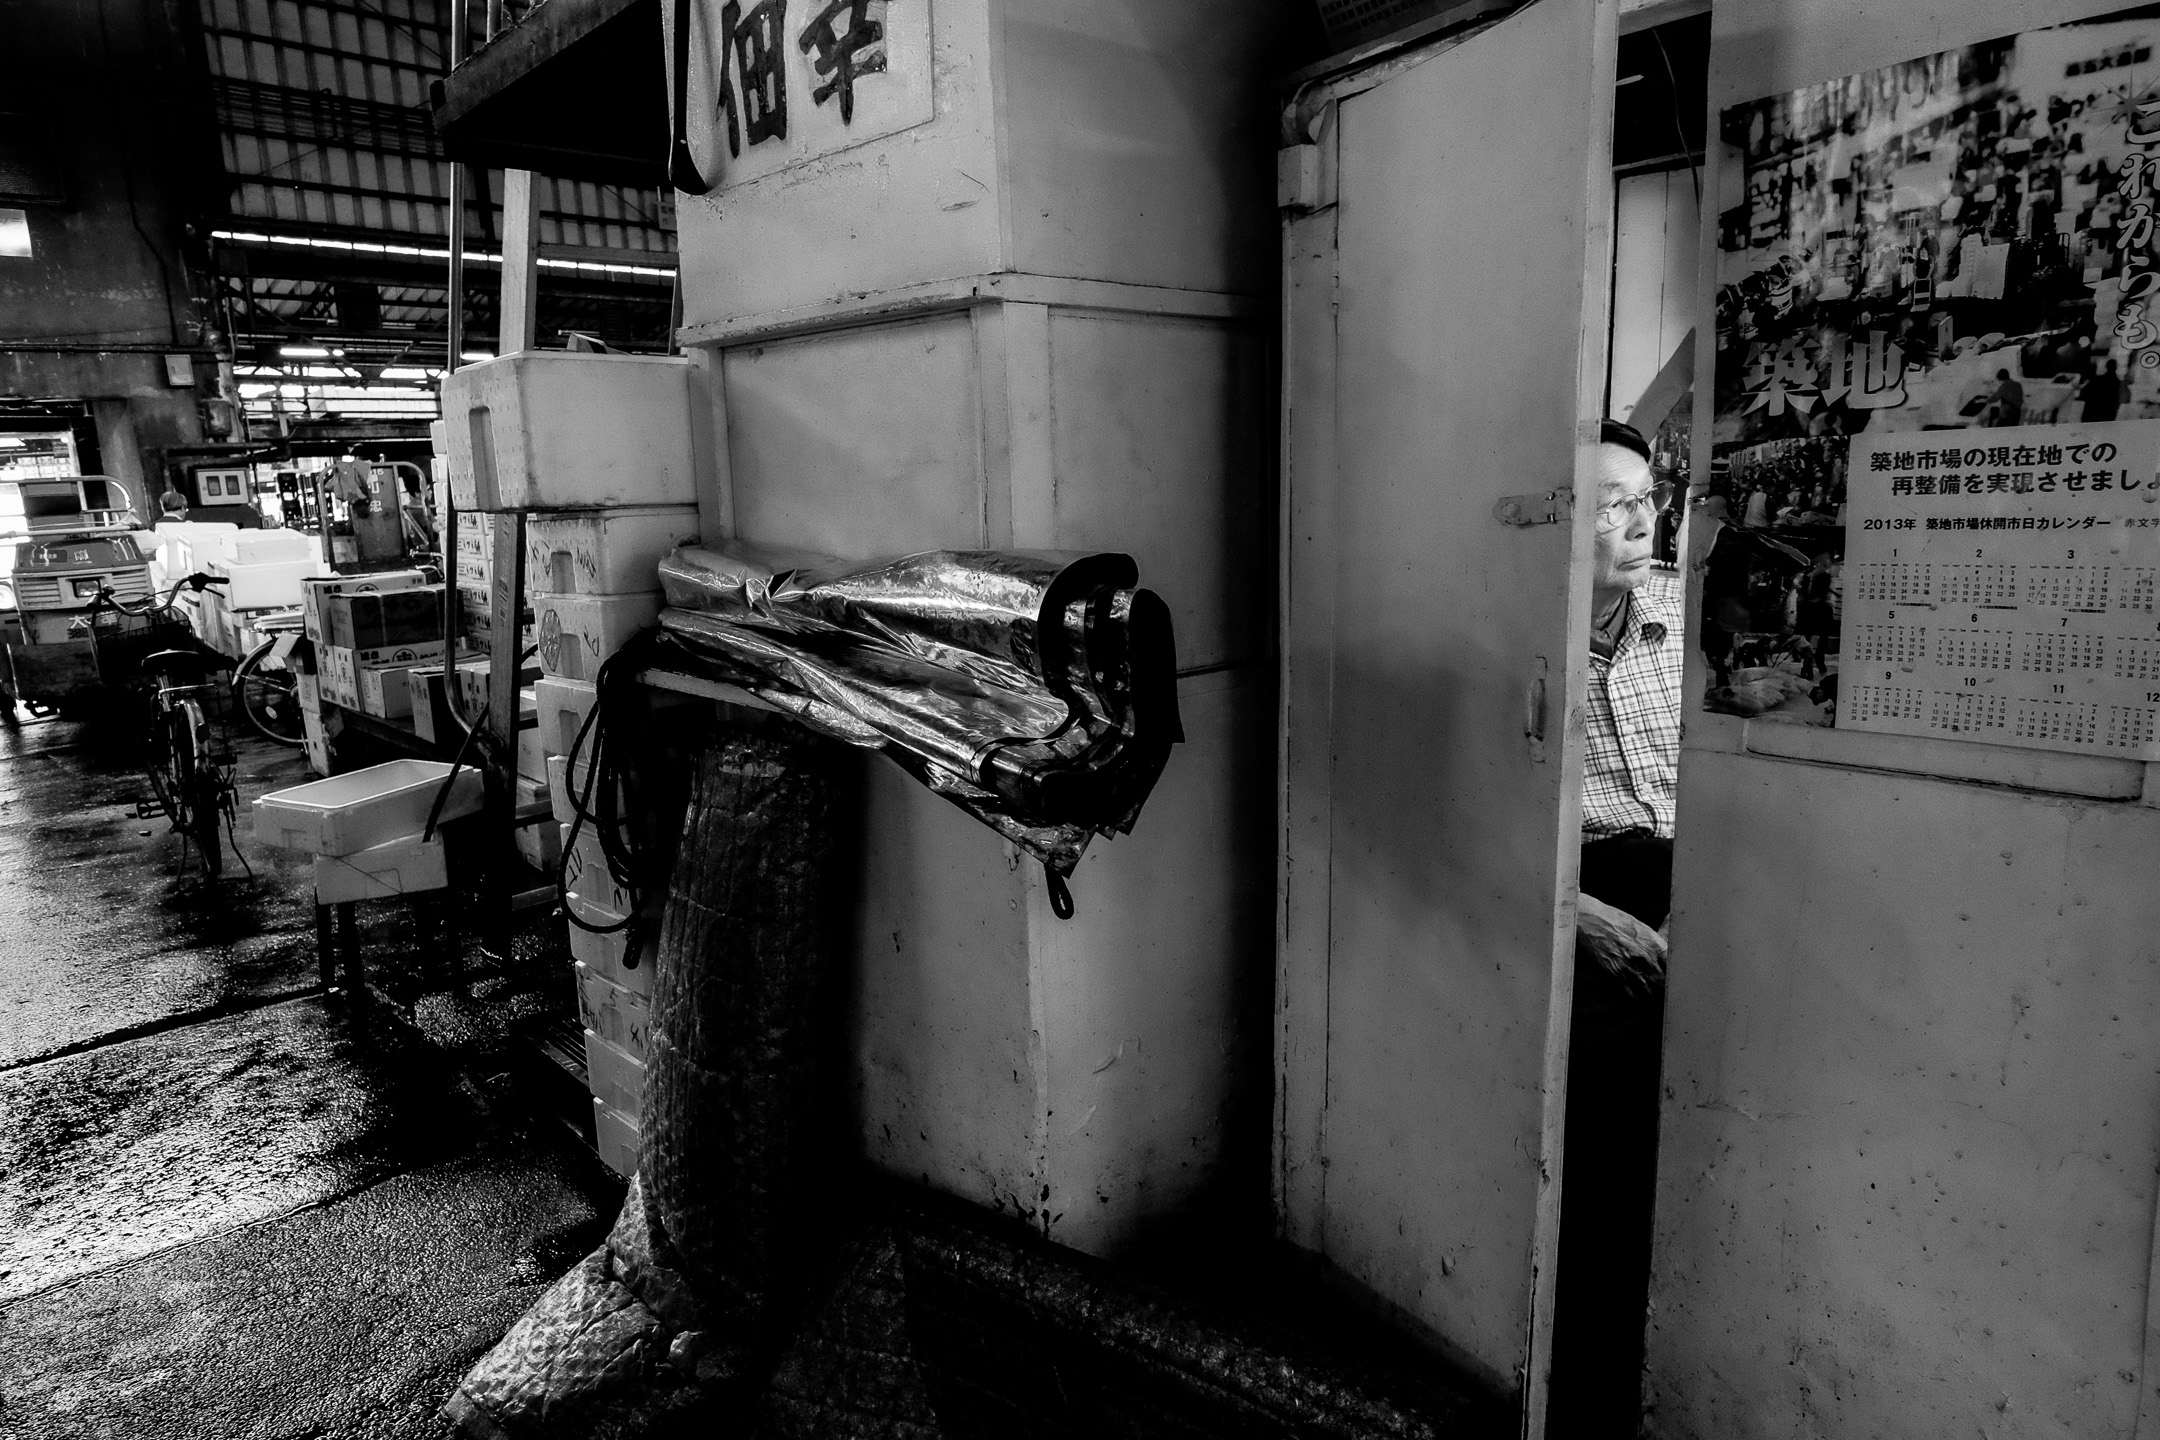 Fujifilm X-Pro1 - 23mm f/1.4 - 1/80 - f/5.6 - iso4000 The fish market is not an easy place to shoot. The light is challenging, you have to watch out not to get in the way and it's a bit messy. On the other hand, this gives you opportunities for layered pictures that require the viewer to look at your image a bit longer.